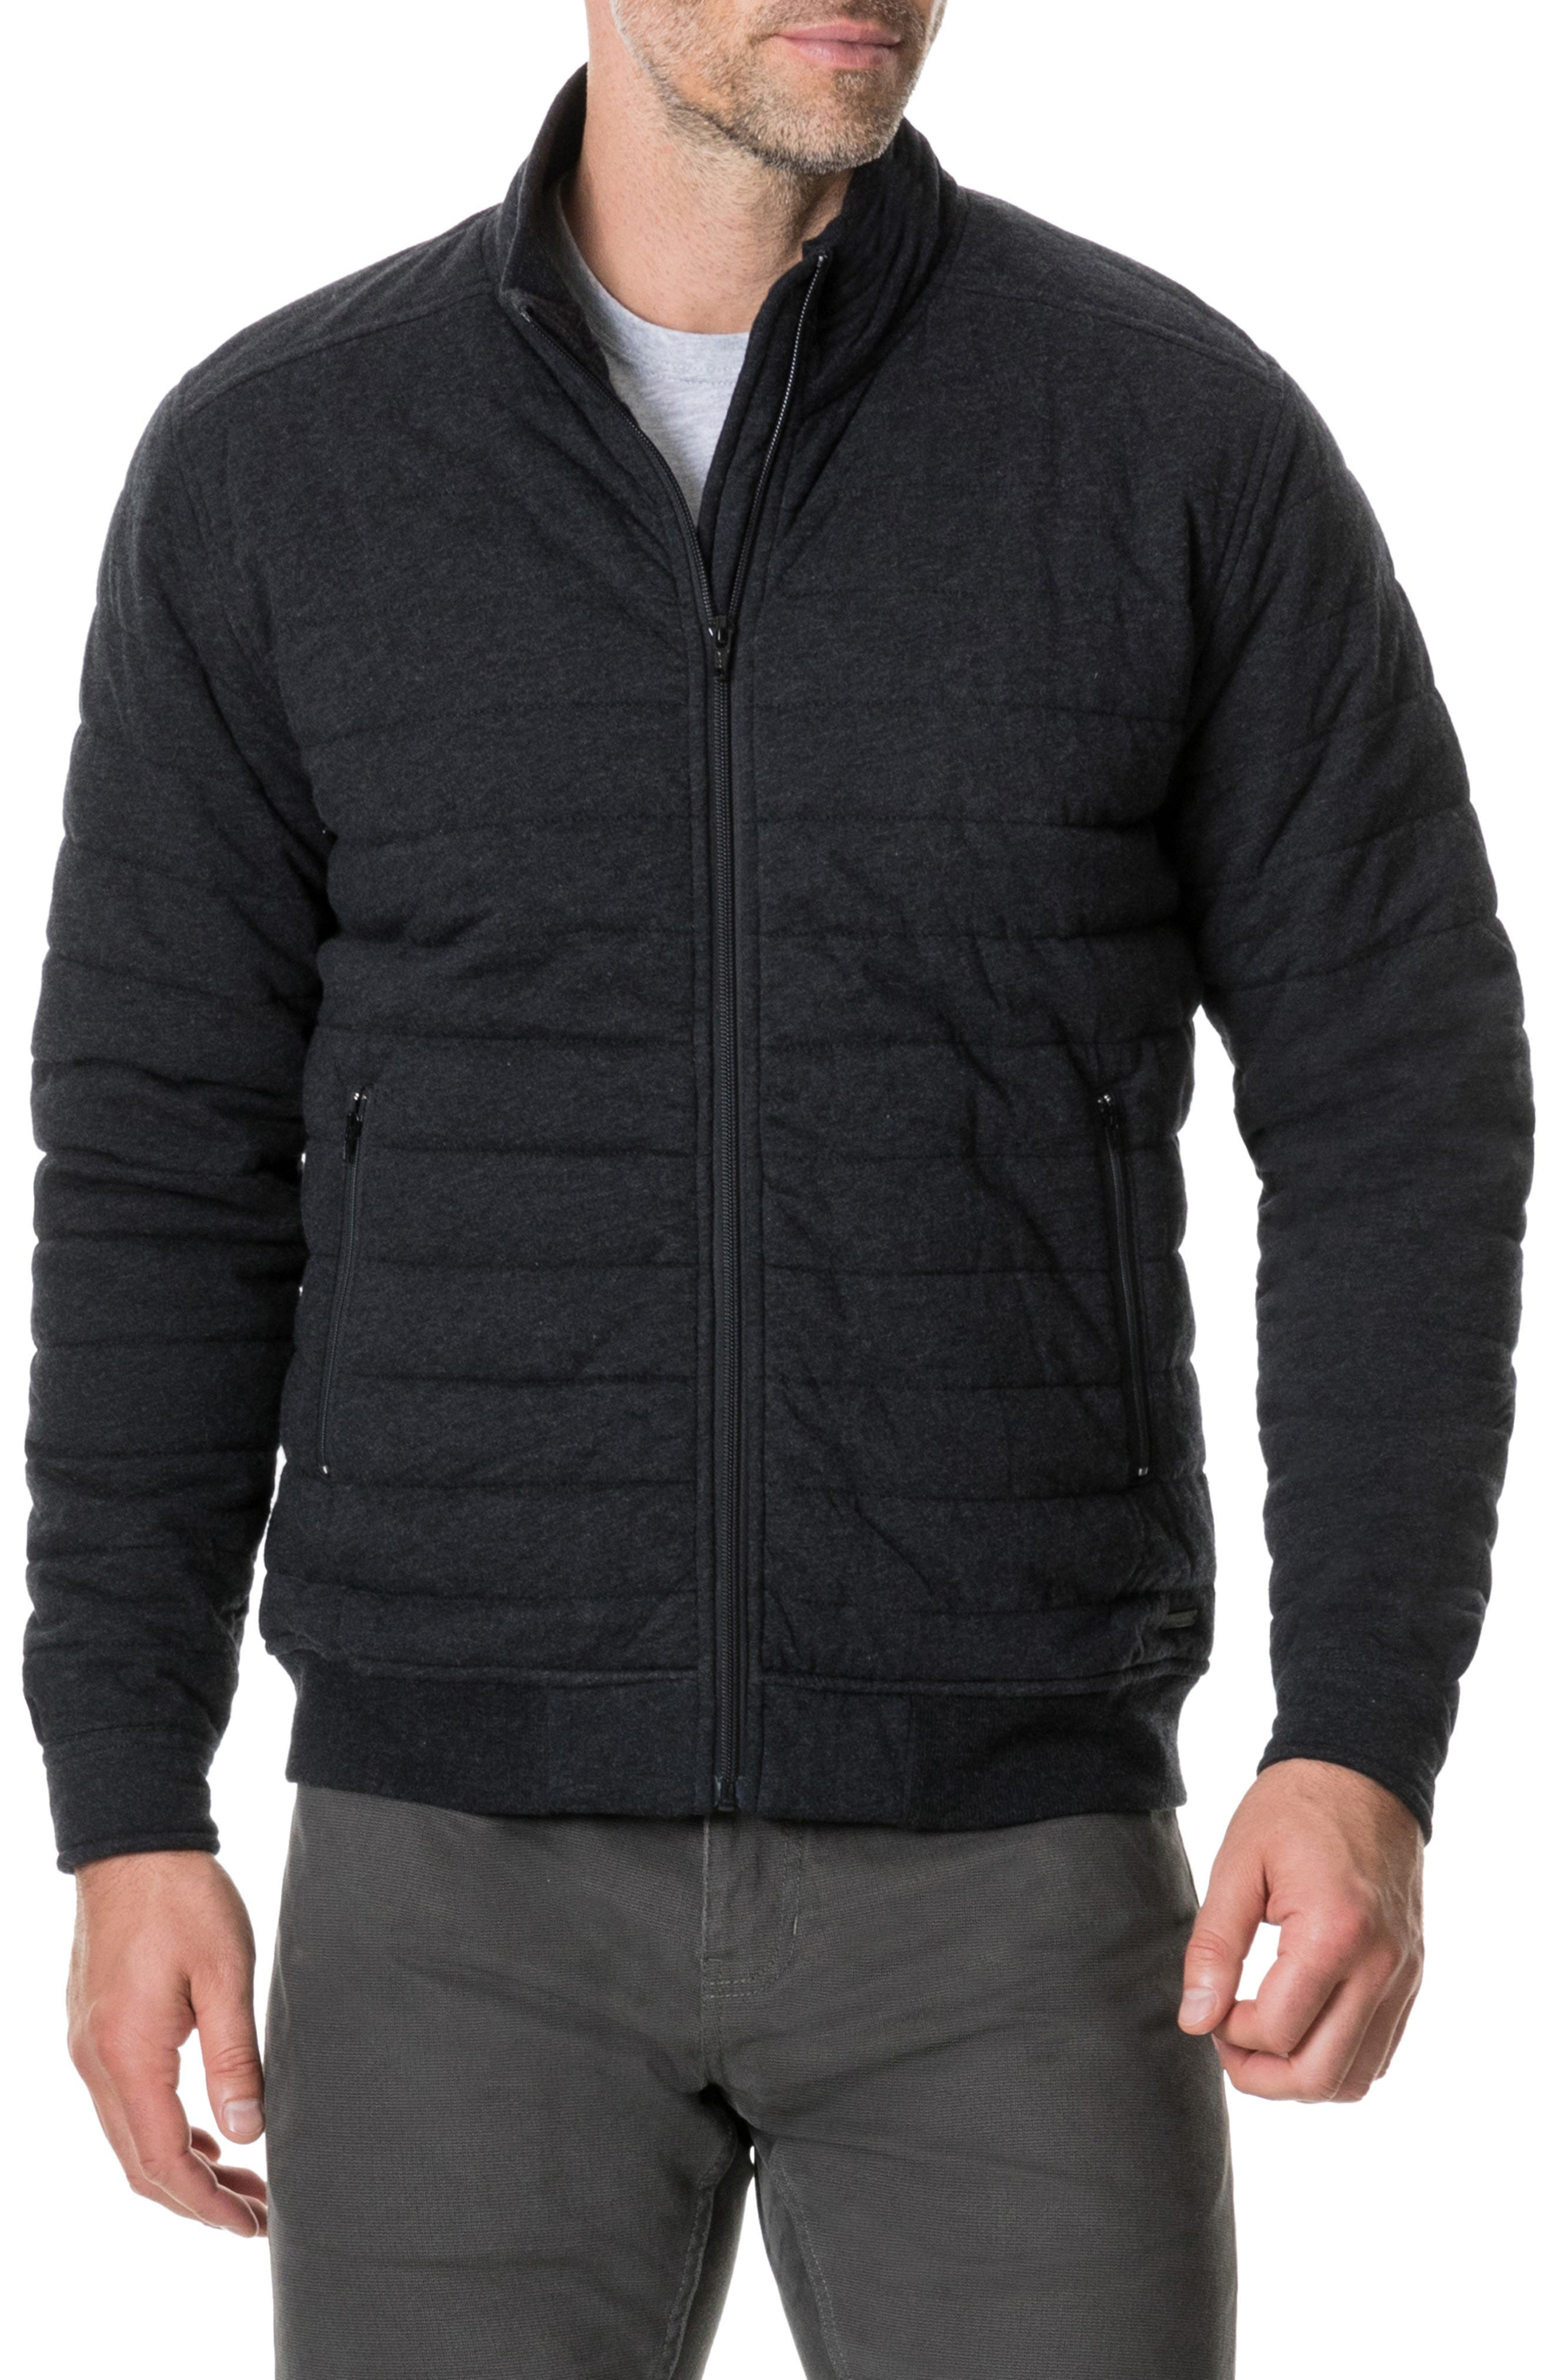 Birch Hill Regular Fit Jacket,                         Main,                         color, CHARCOAL